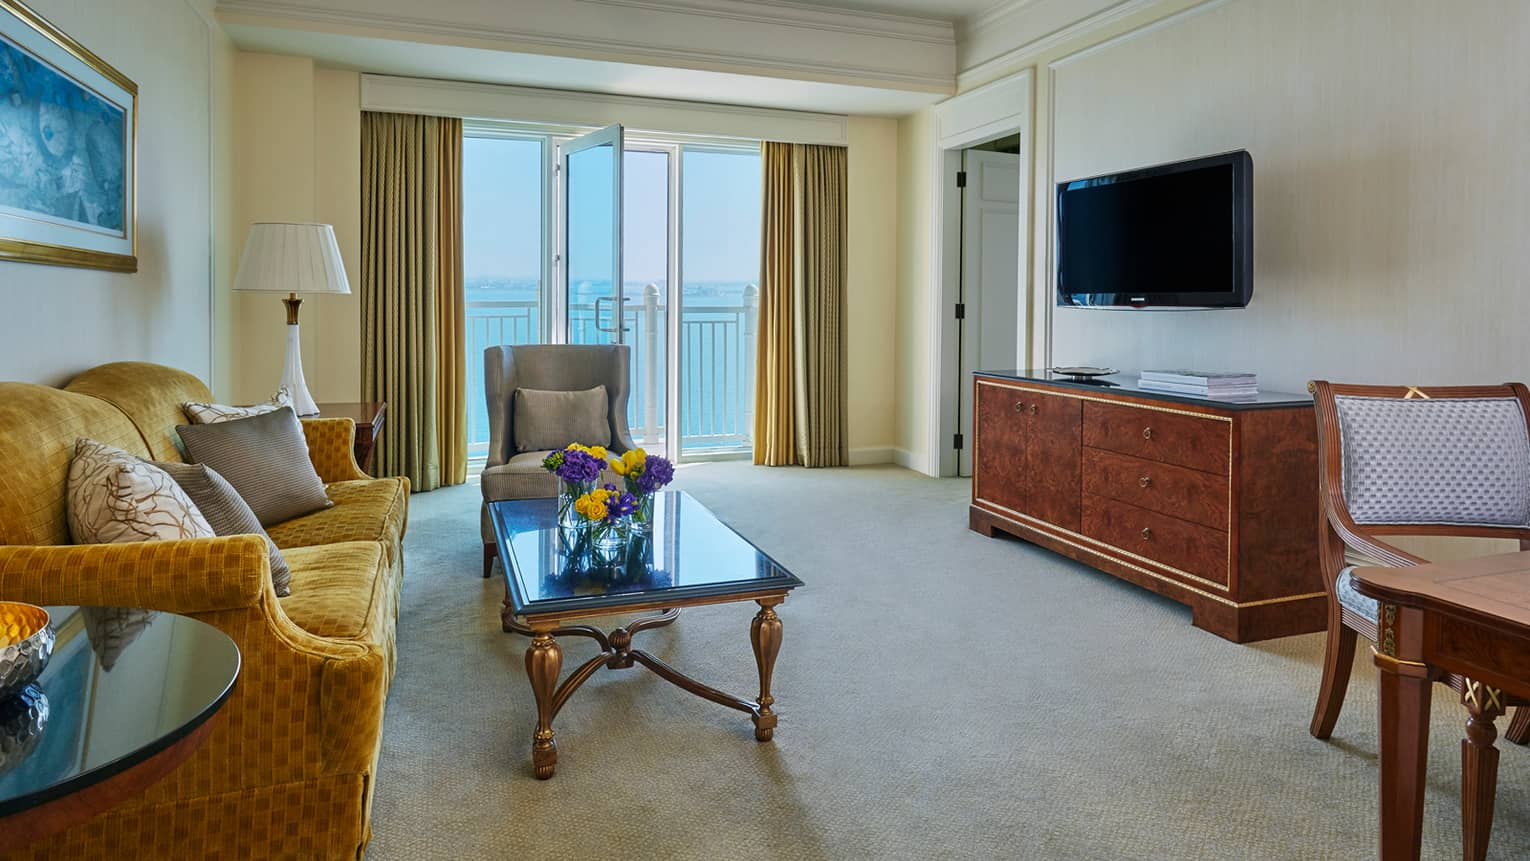 Deluxe Four Seasons Executive Suite living room with gold plush sofa, coffee table, wood dresser